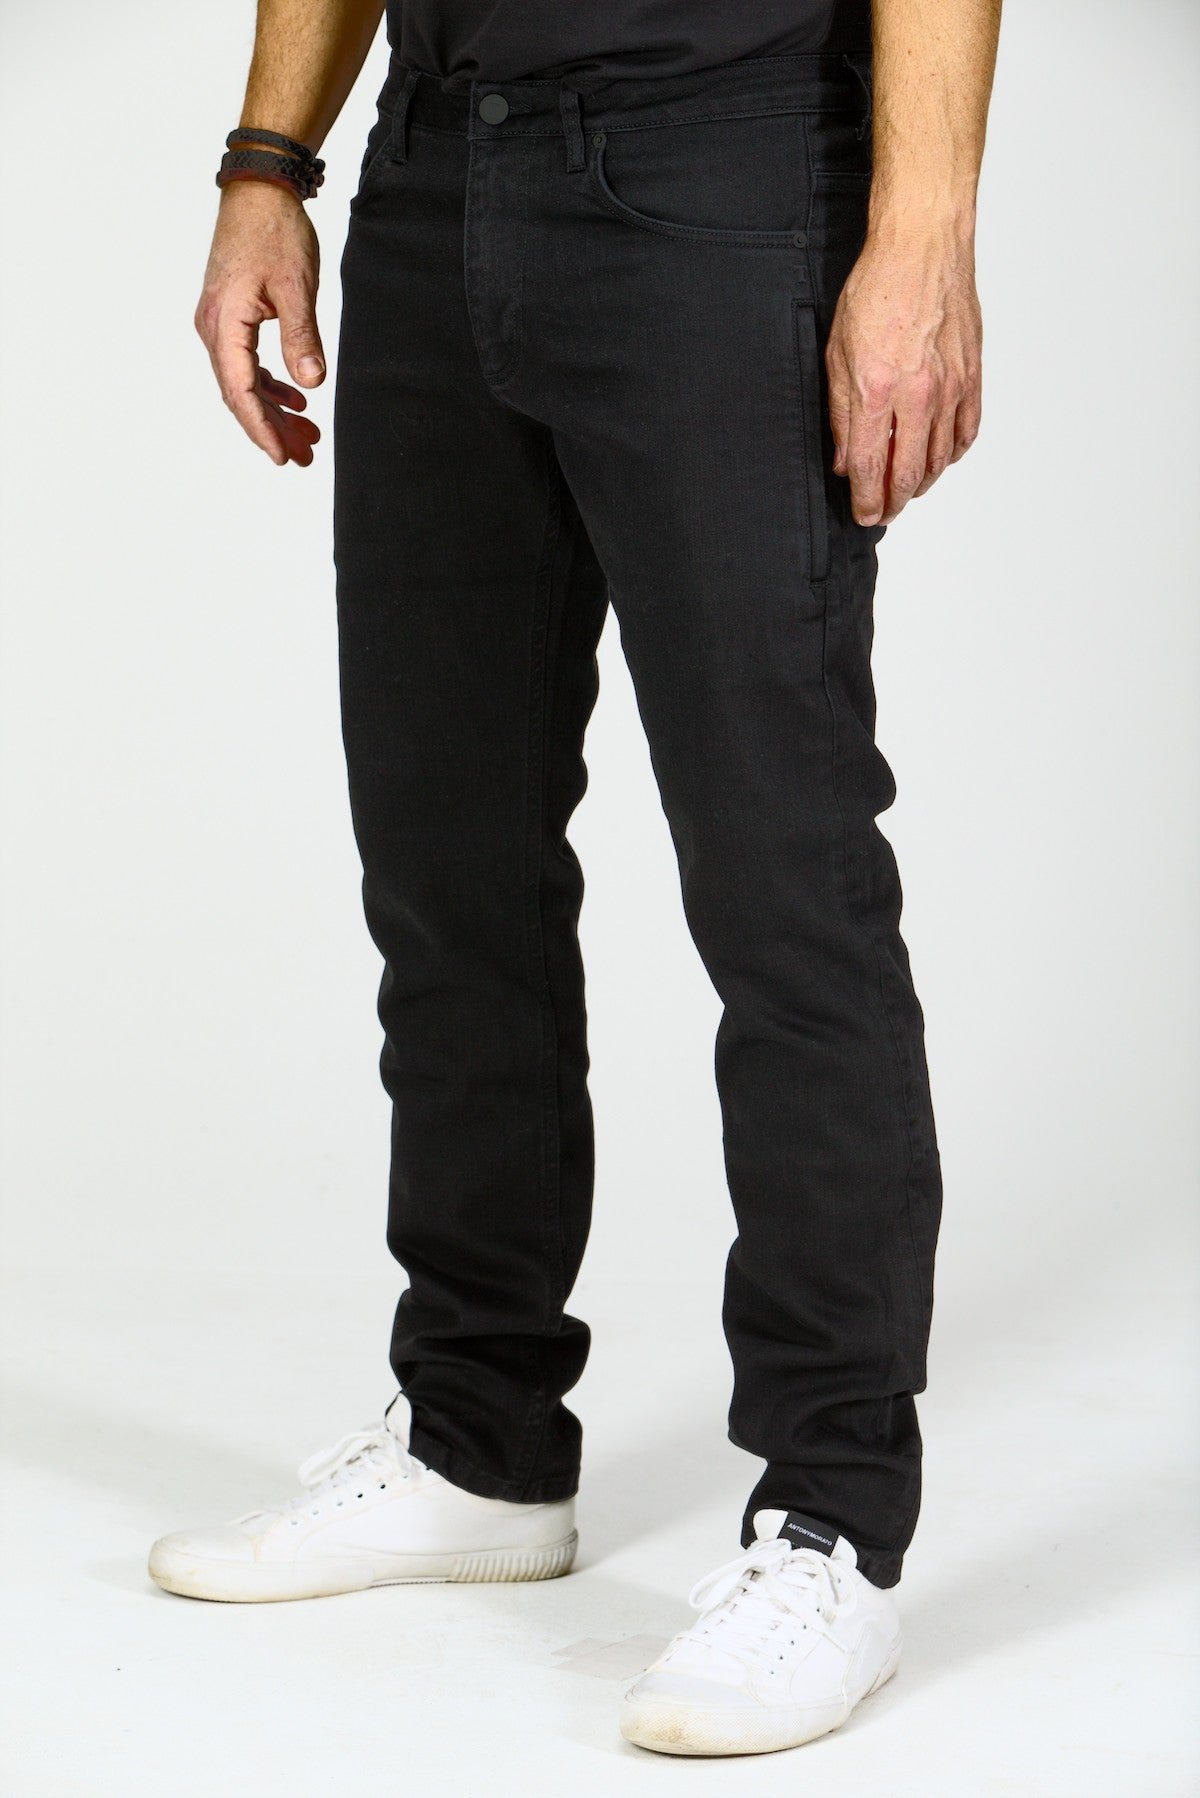 Slim Fit - Black Herren-Jeans